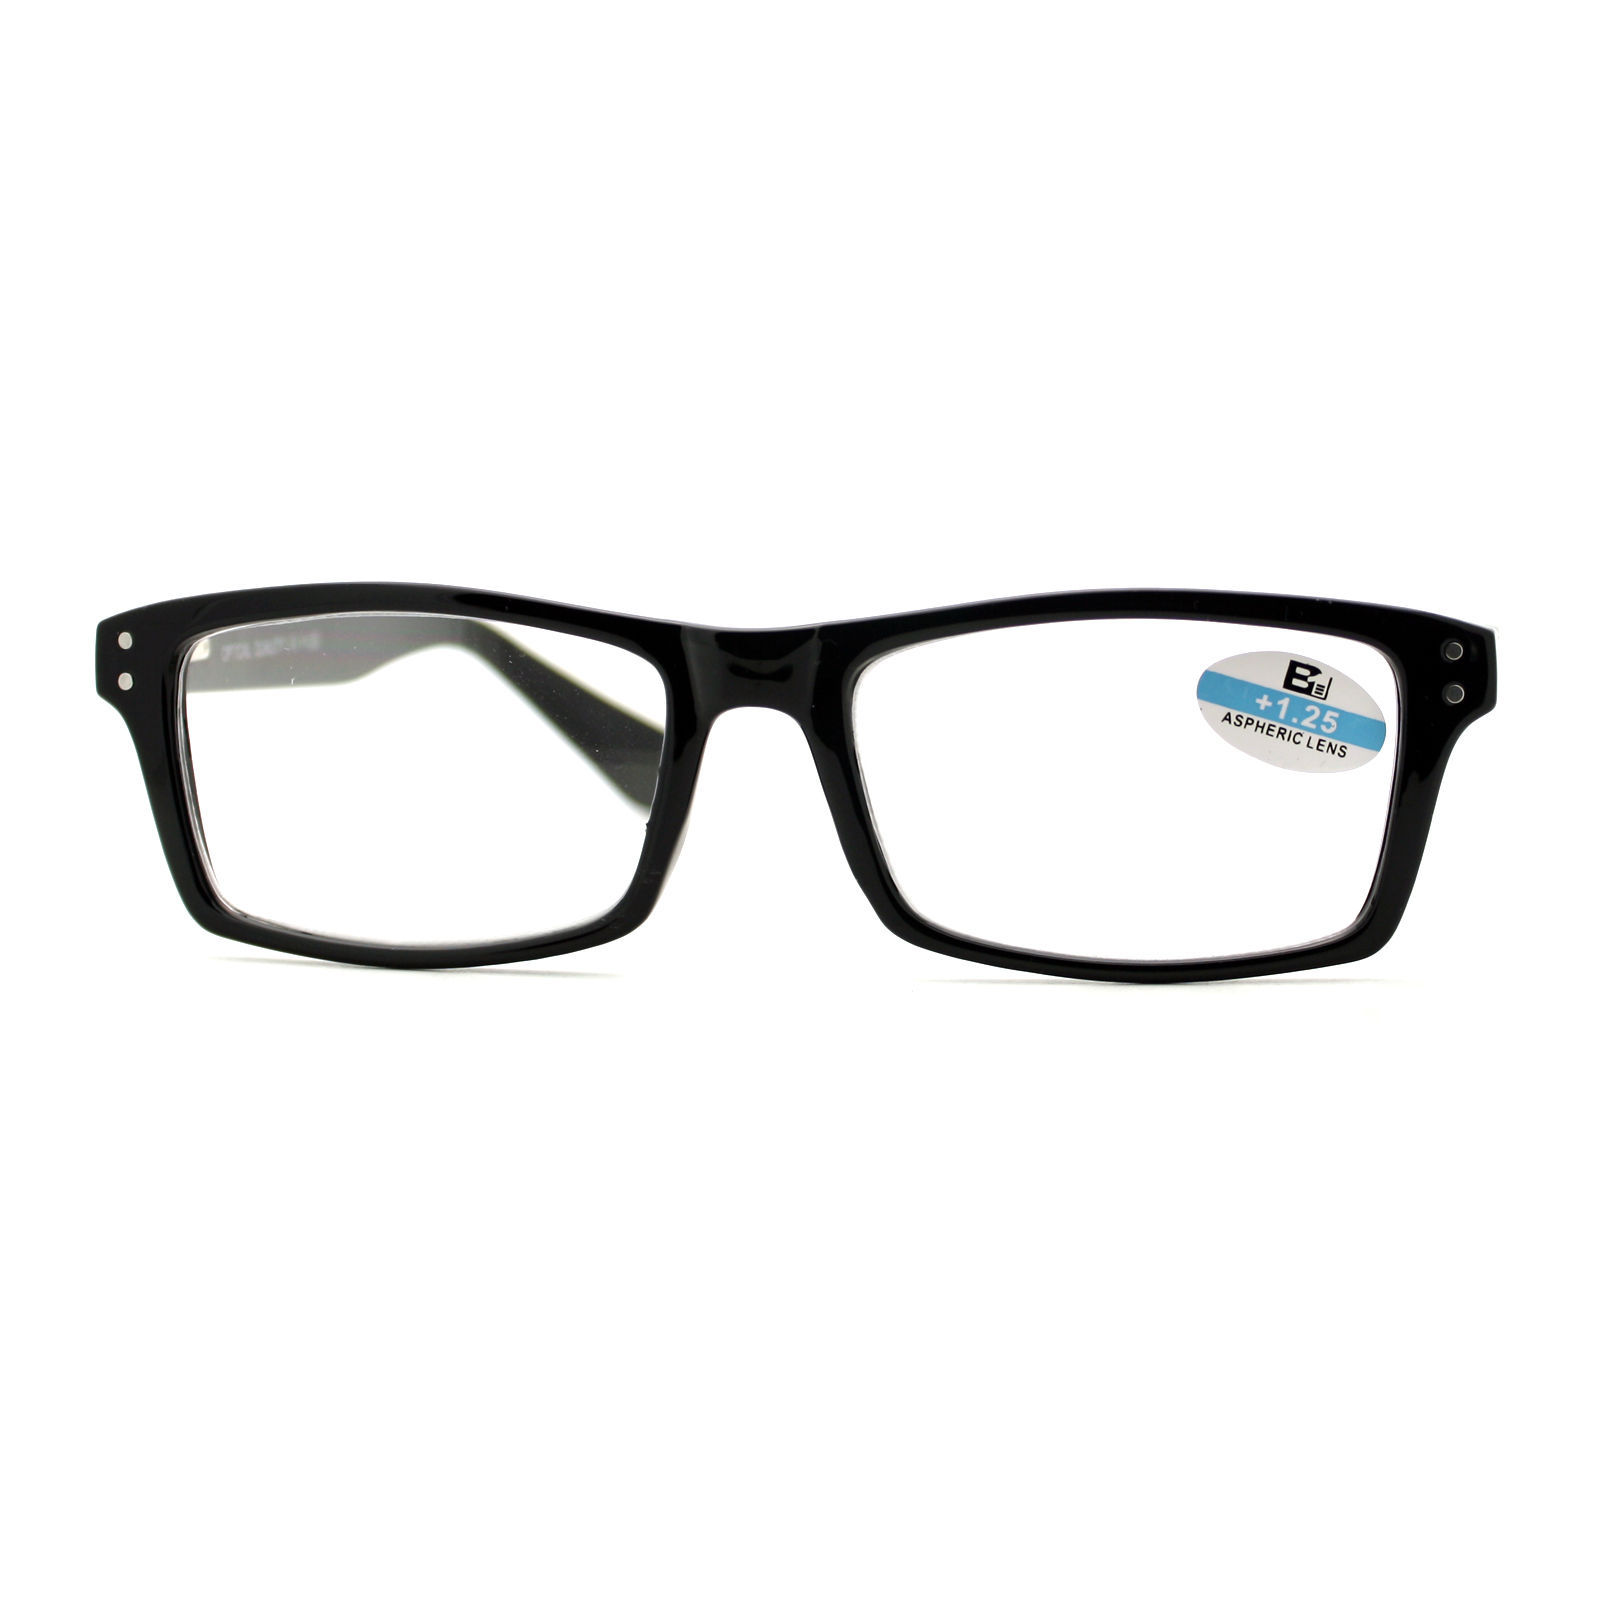 edaa97f0b35 Tag Heuer Reading Glasses  0 listings